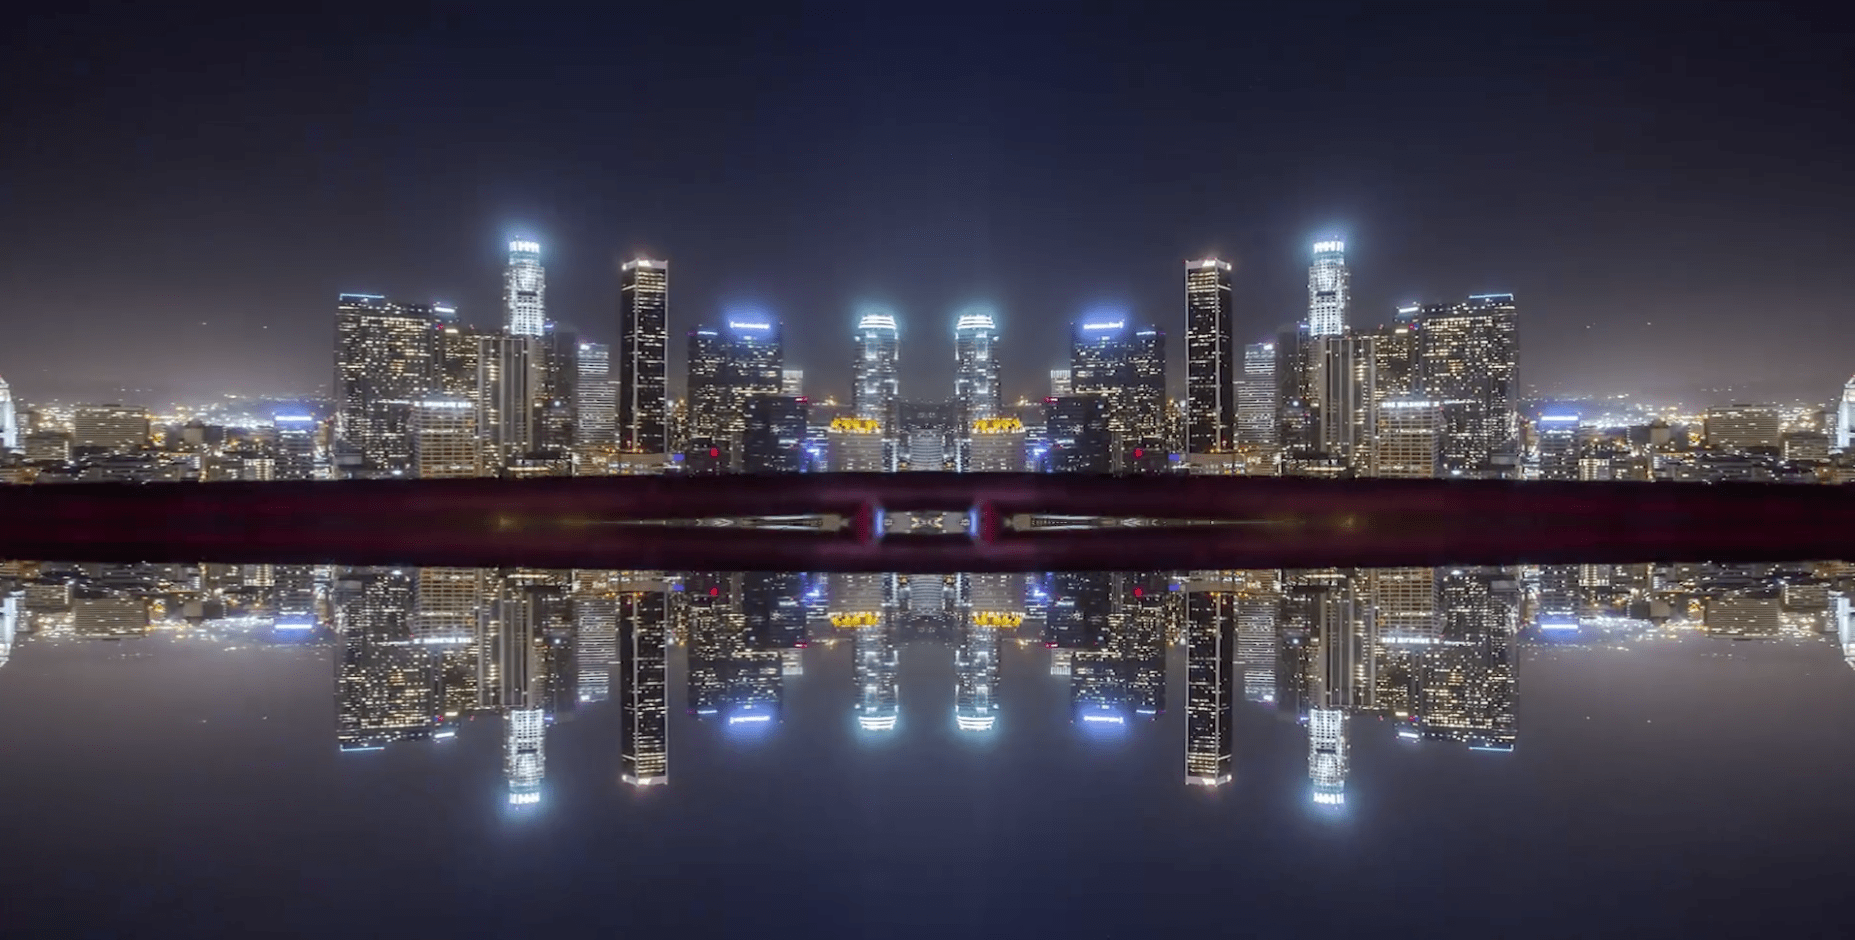 Screen shot from 'Mirror City Timelapse' by Michael Shaimblum.